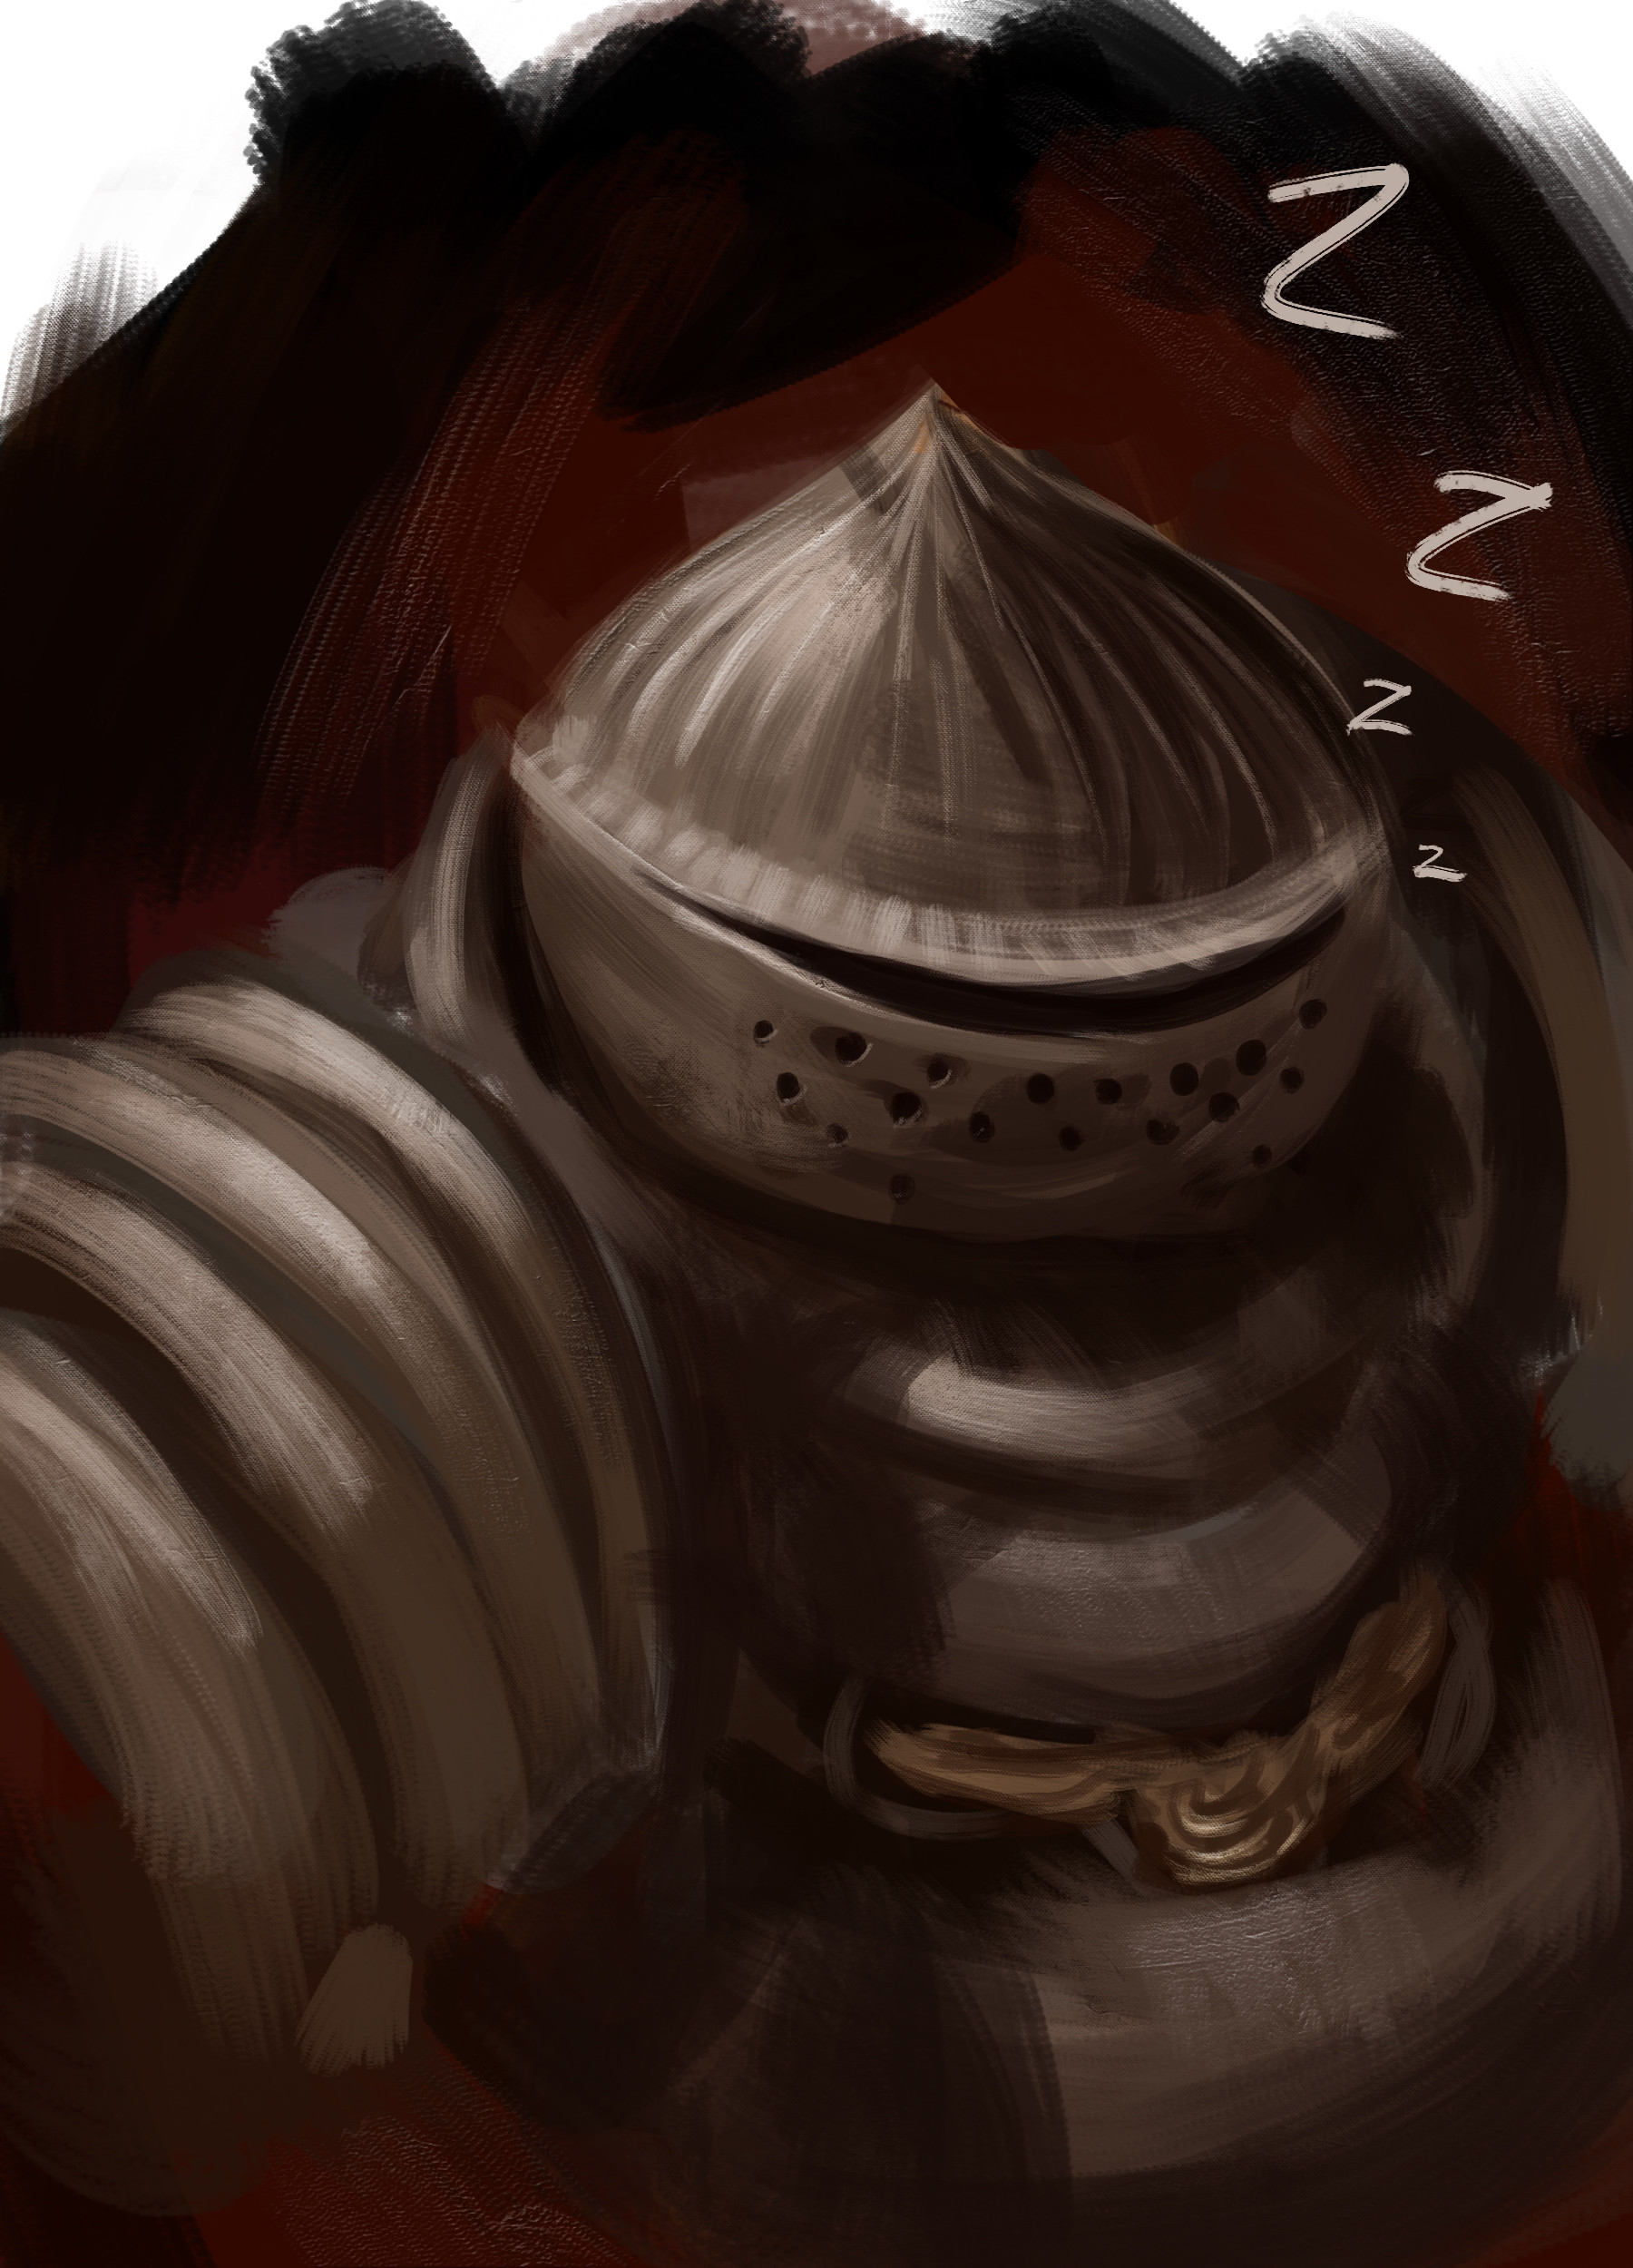 Konrad langa siegmeyer of catarina